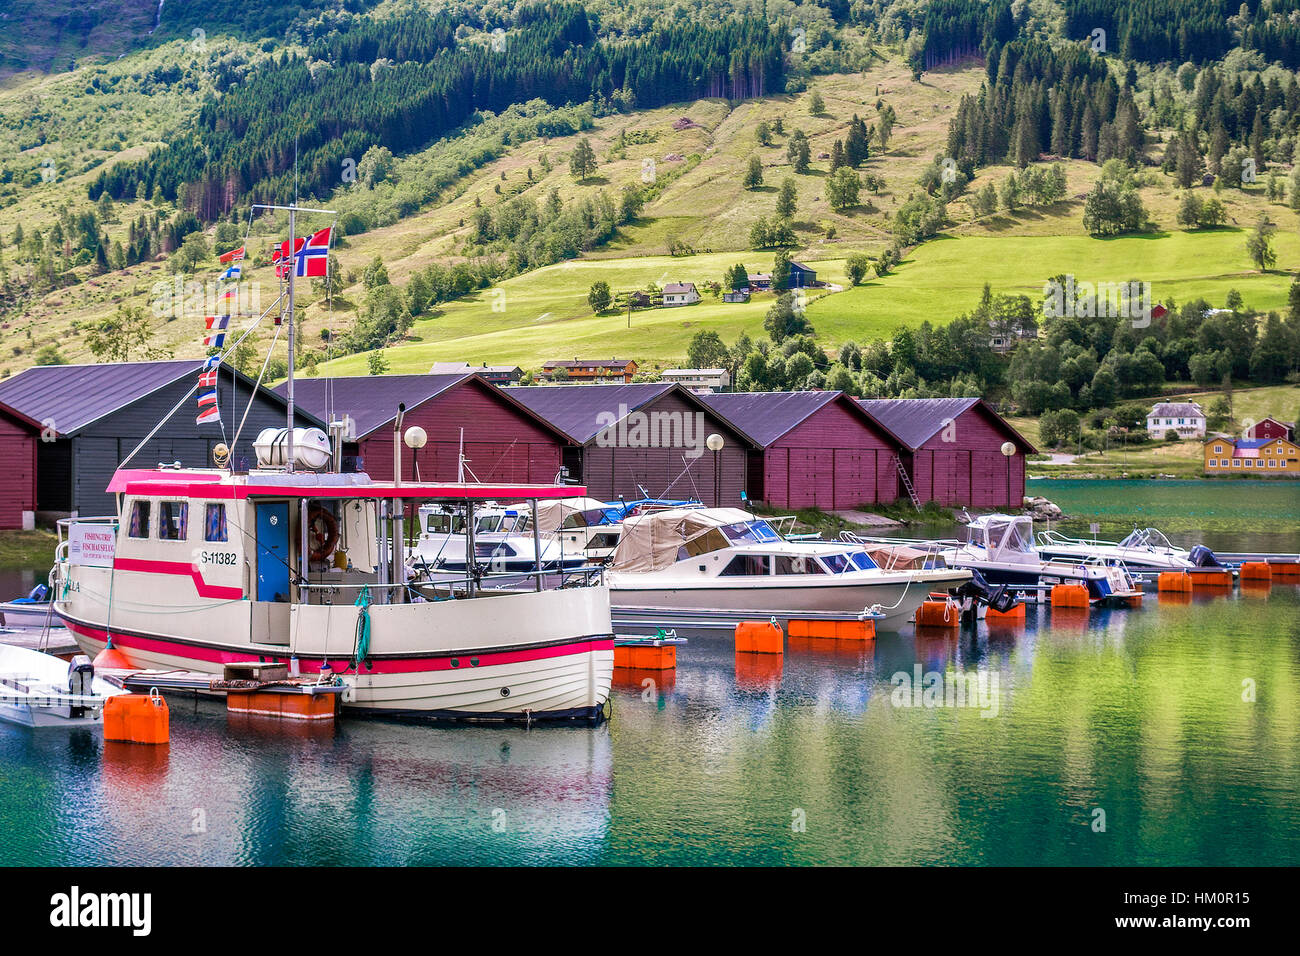 Boats Tied Up At Olden Norway - Stock Image